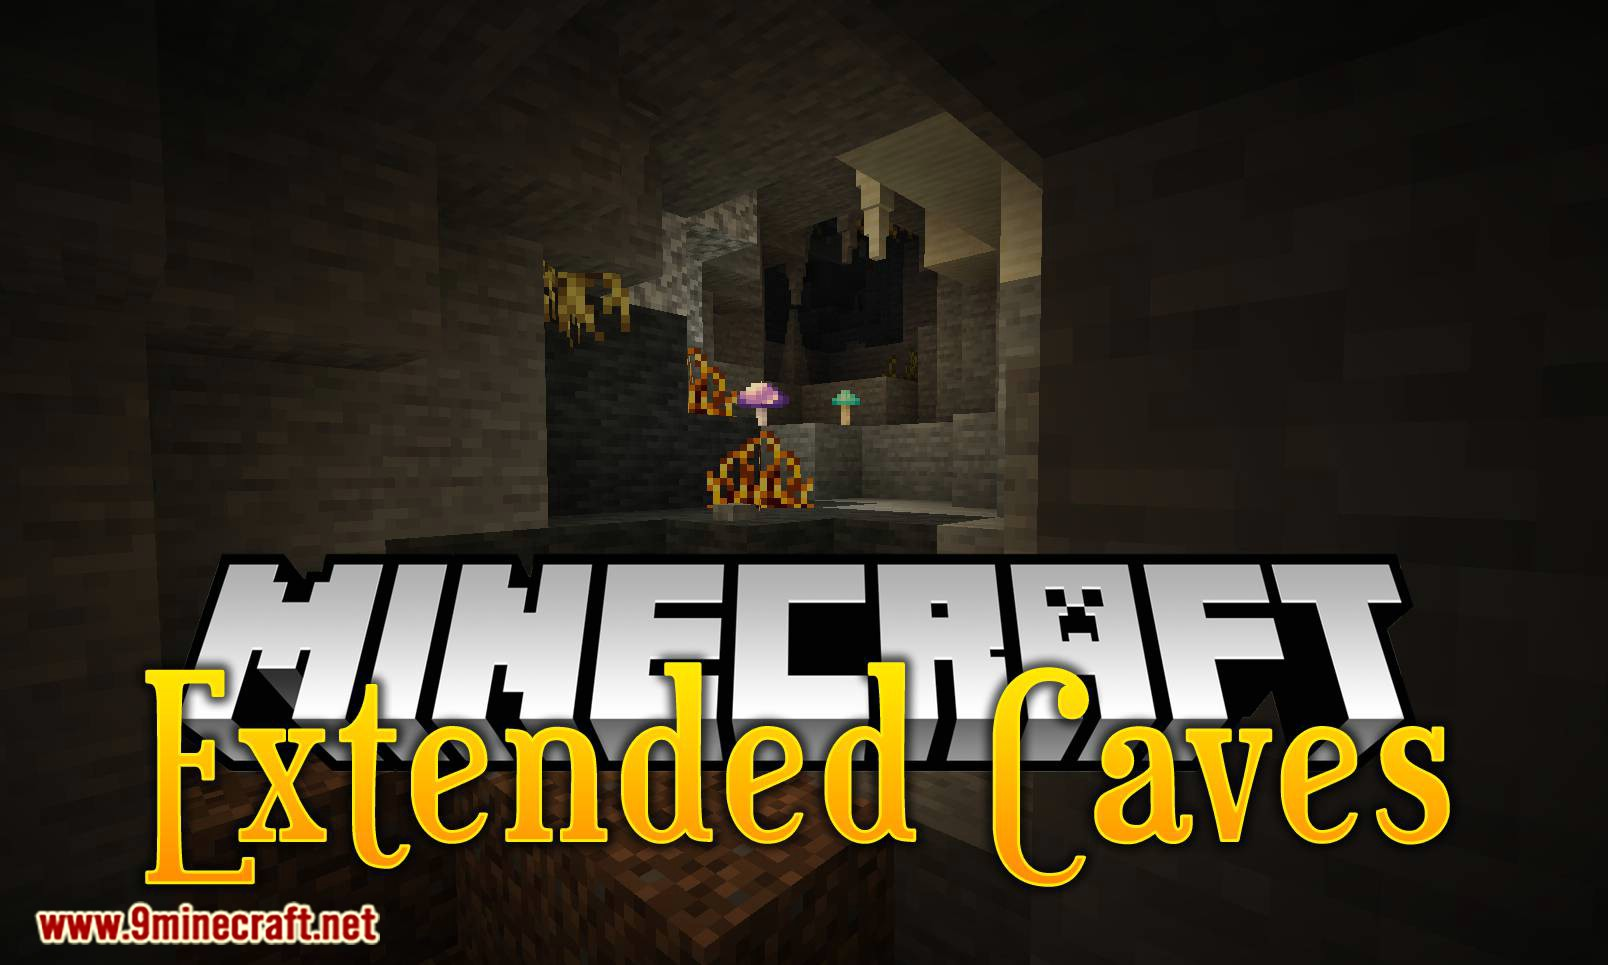 Extended Caves mod for minecraft logo